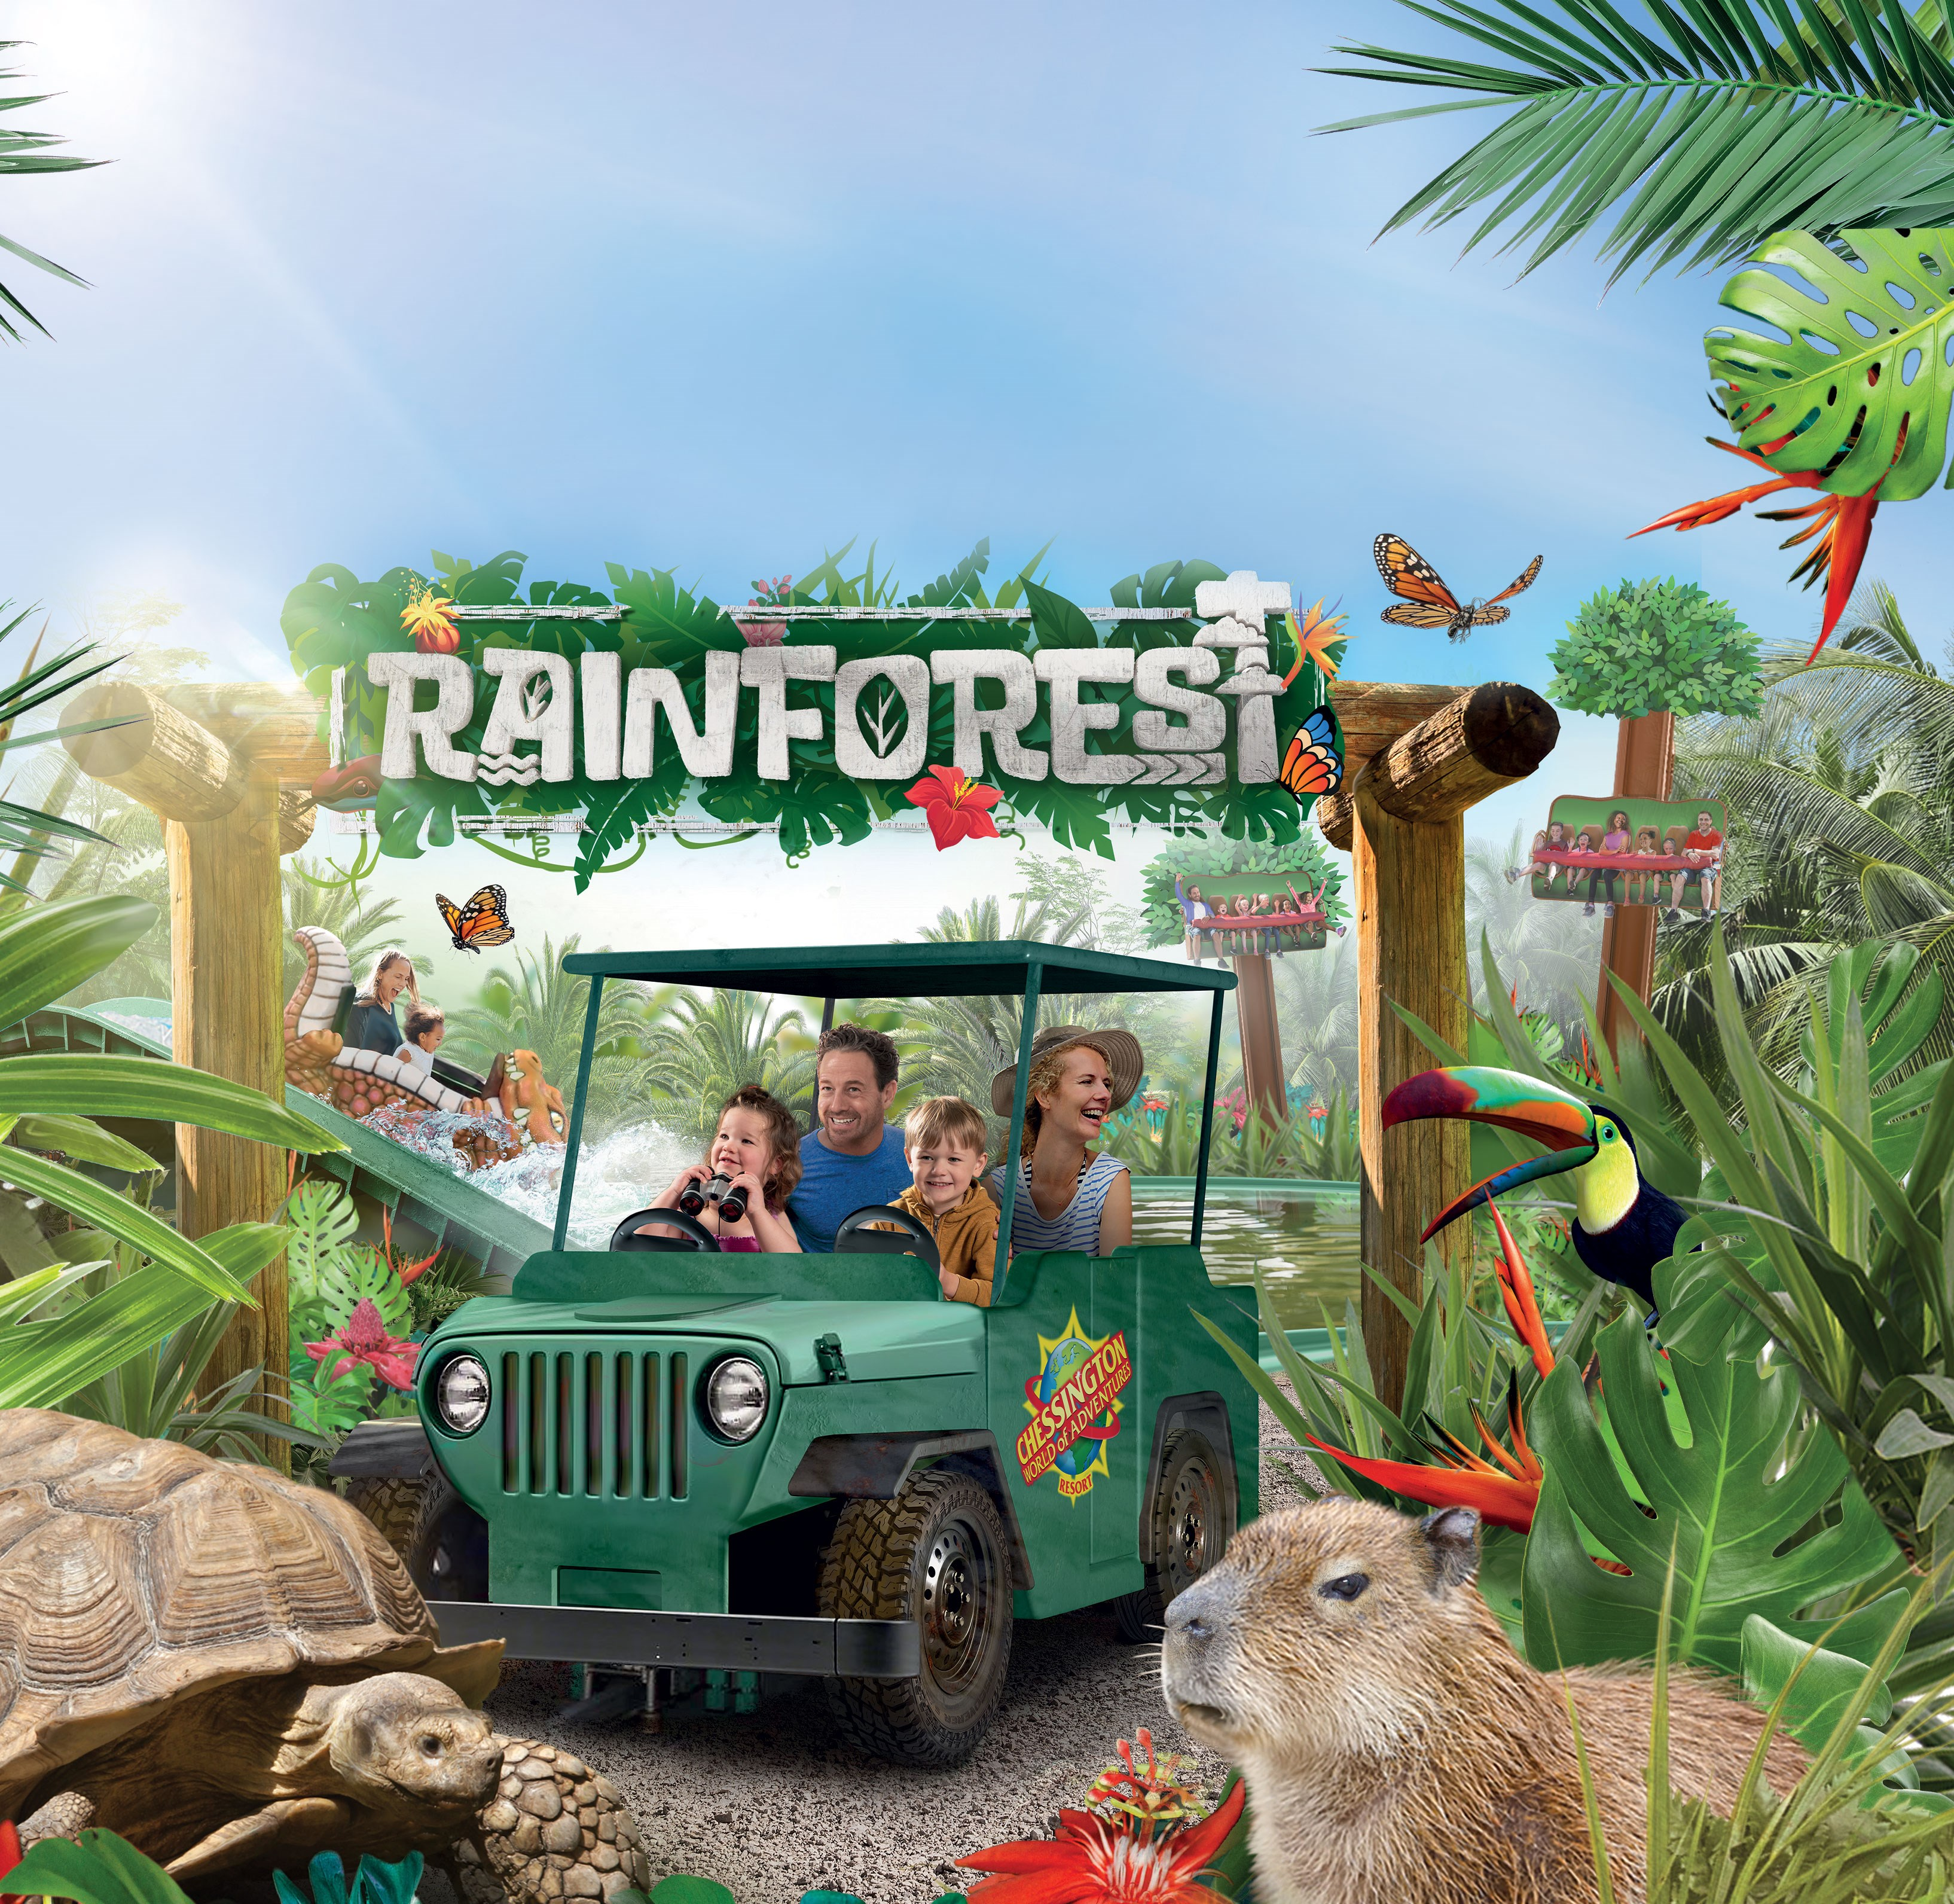 The Rainforest Websitev2